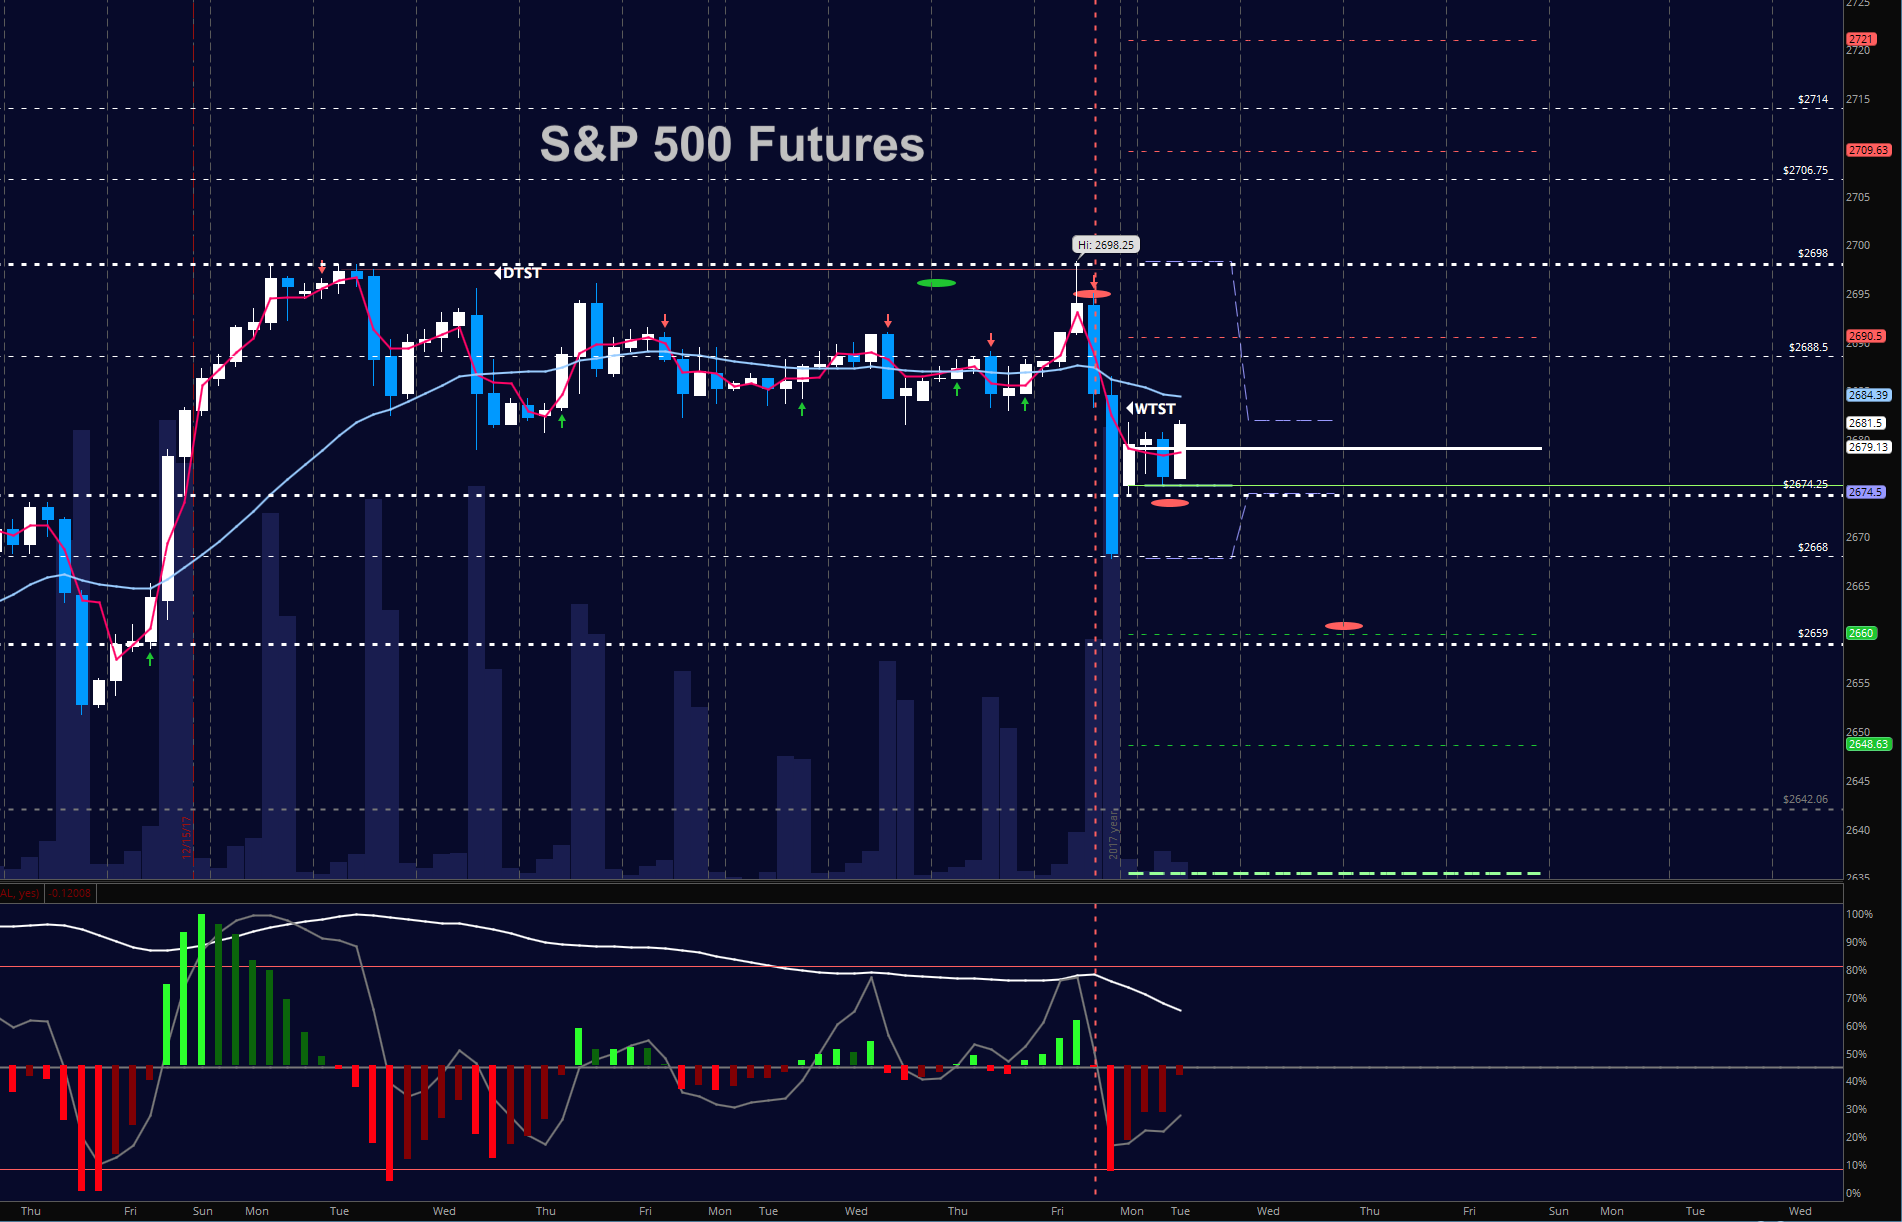 S p 500 futures trading update for january 2 2018 see it market